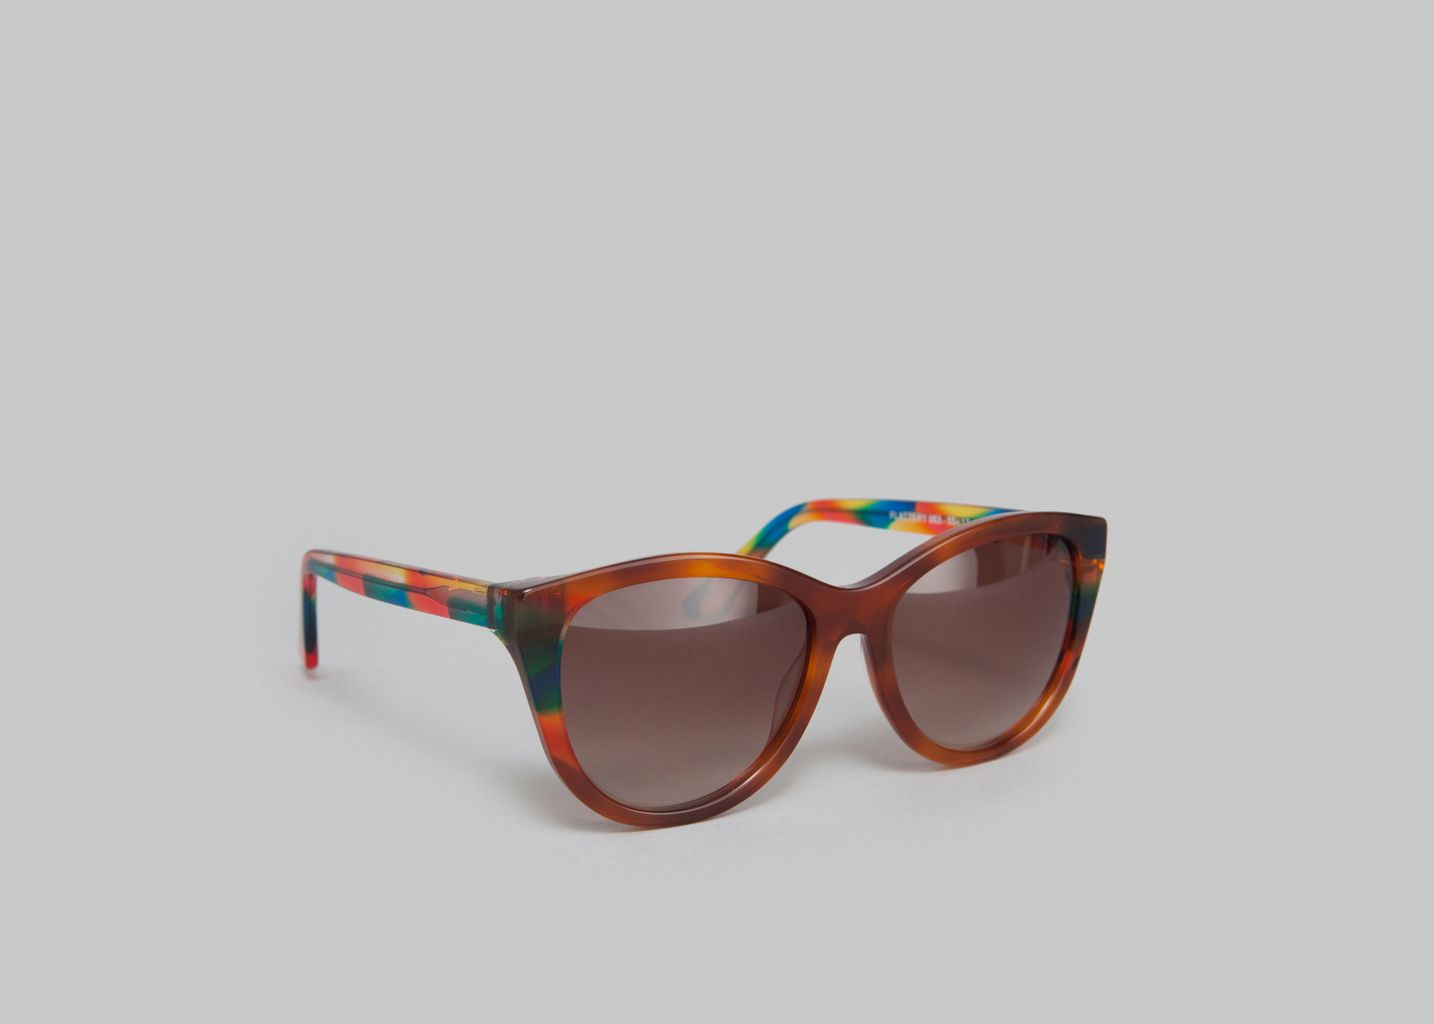 Lunettes Flattery - Thierry Lasry